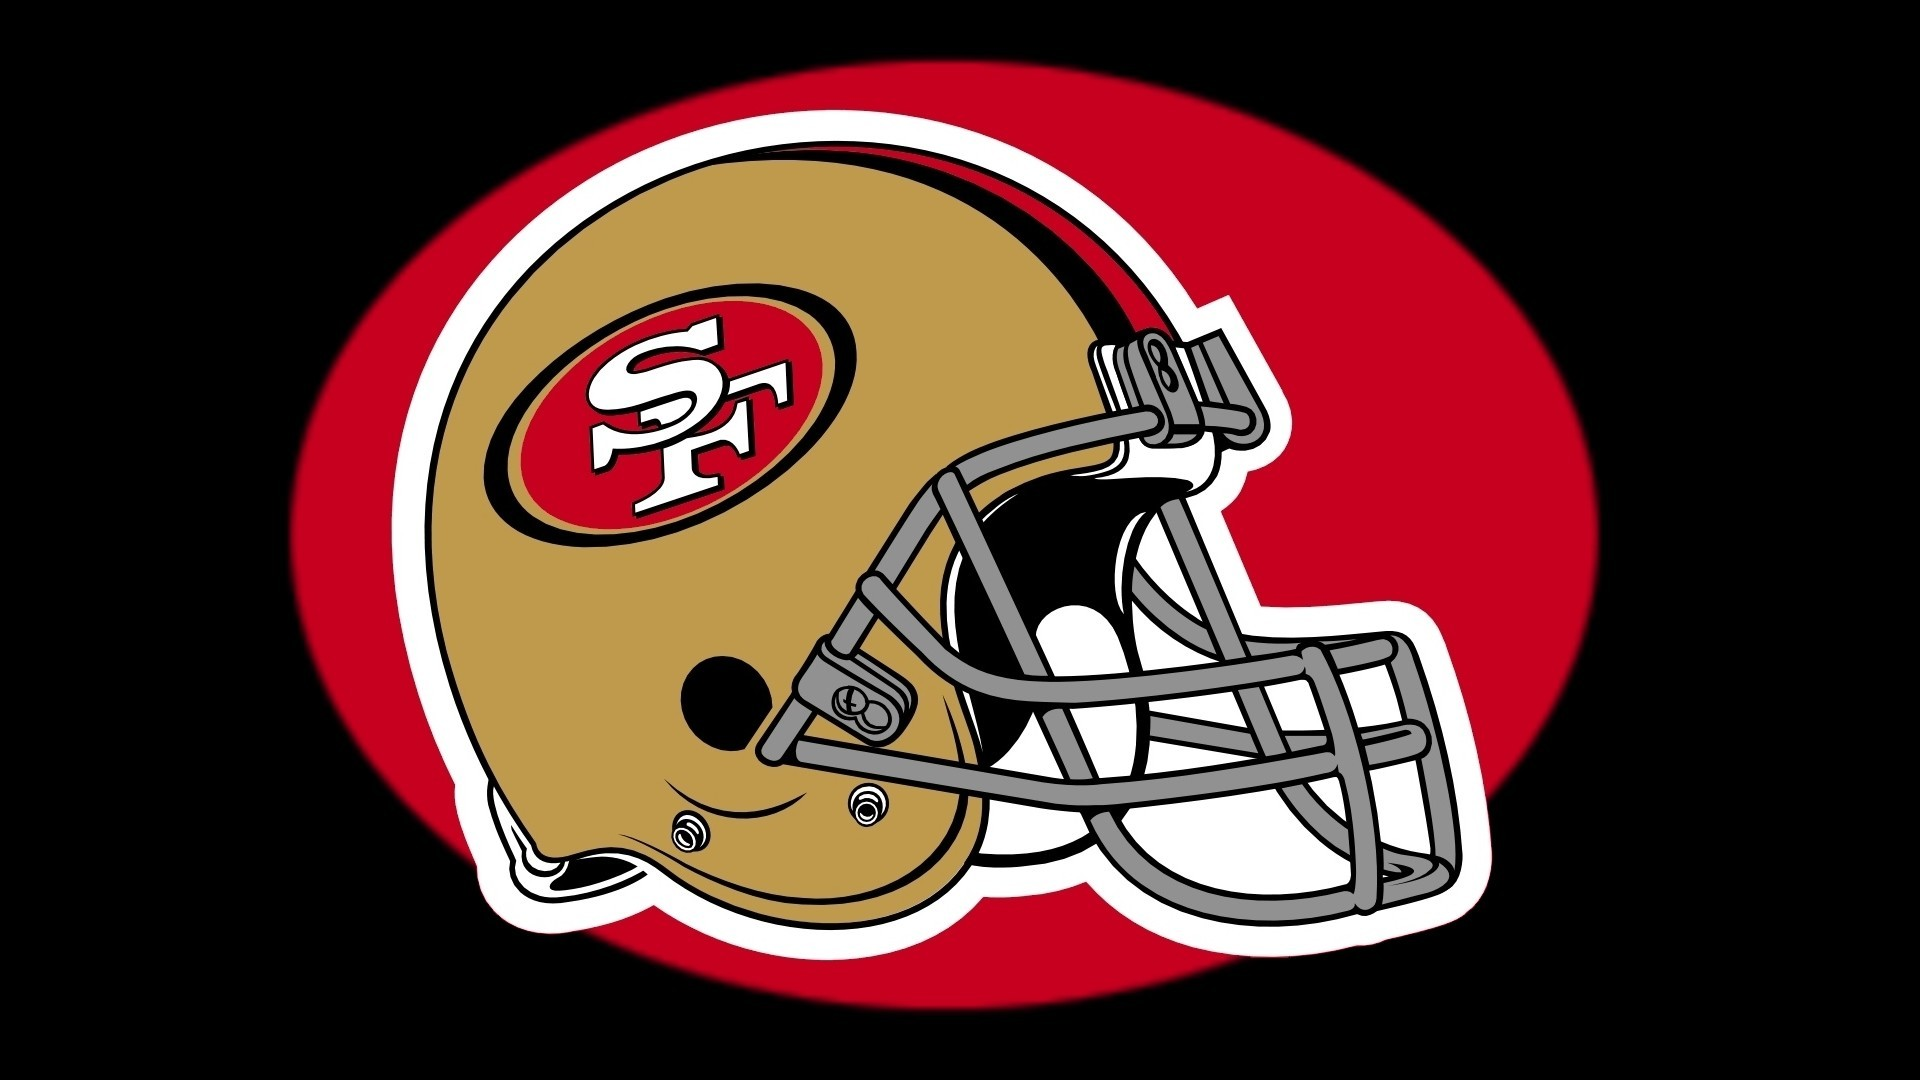 1920x1080 san francisco 49ers helmet logo on black baground